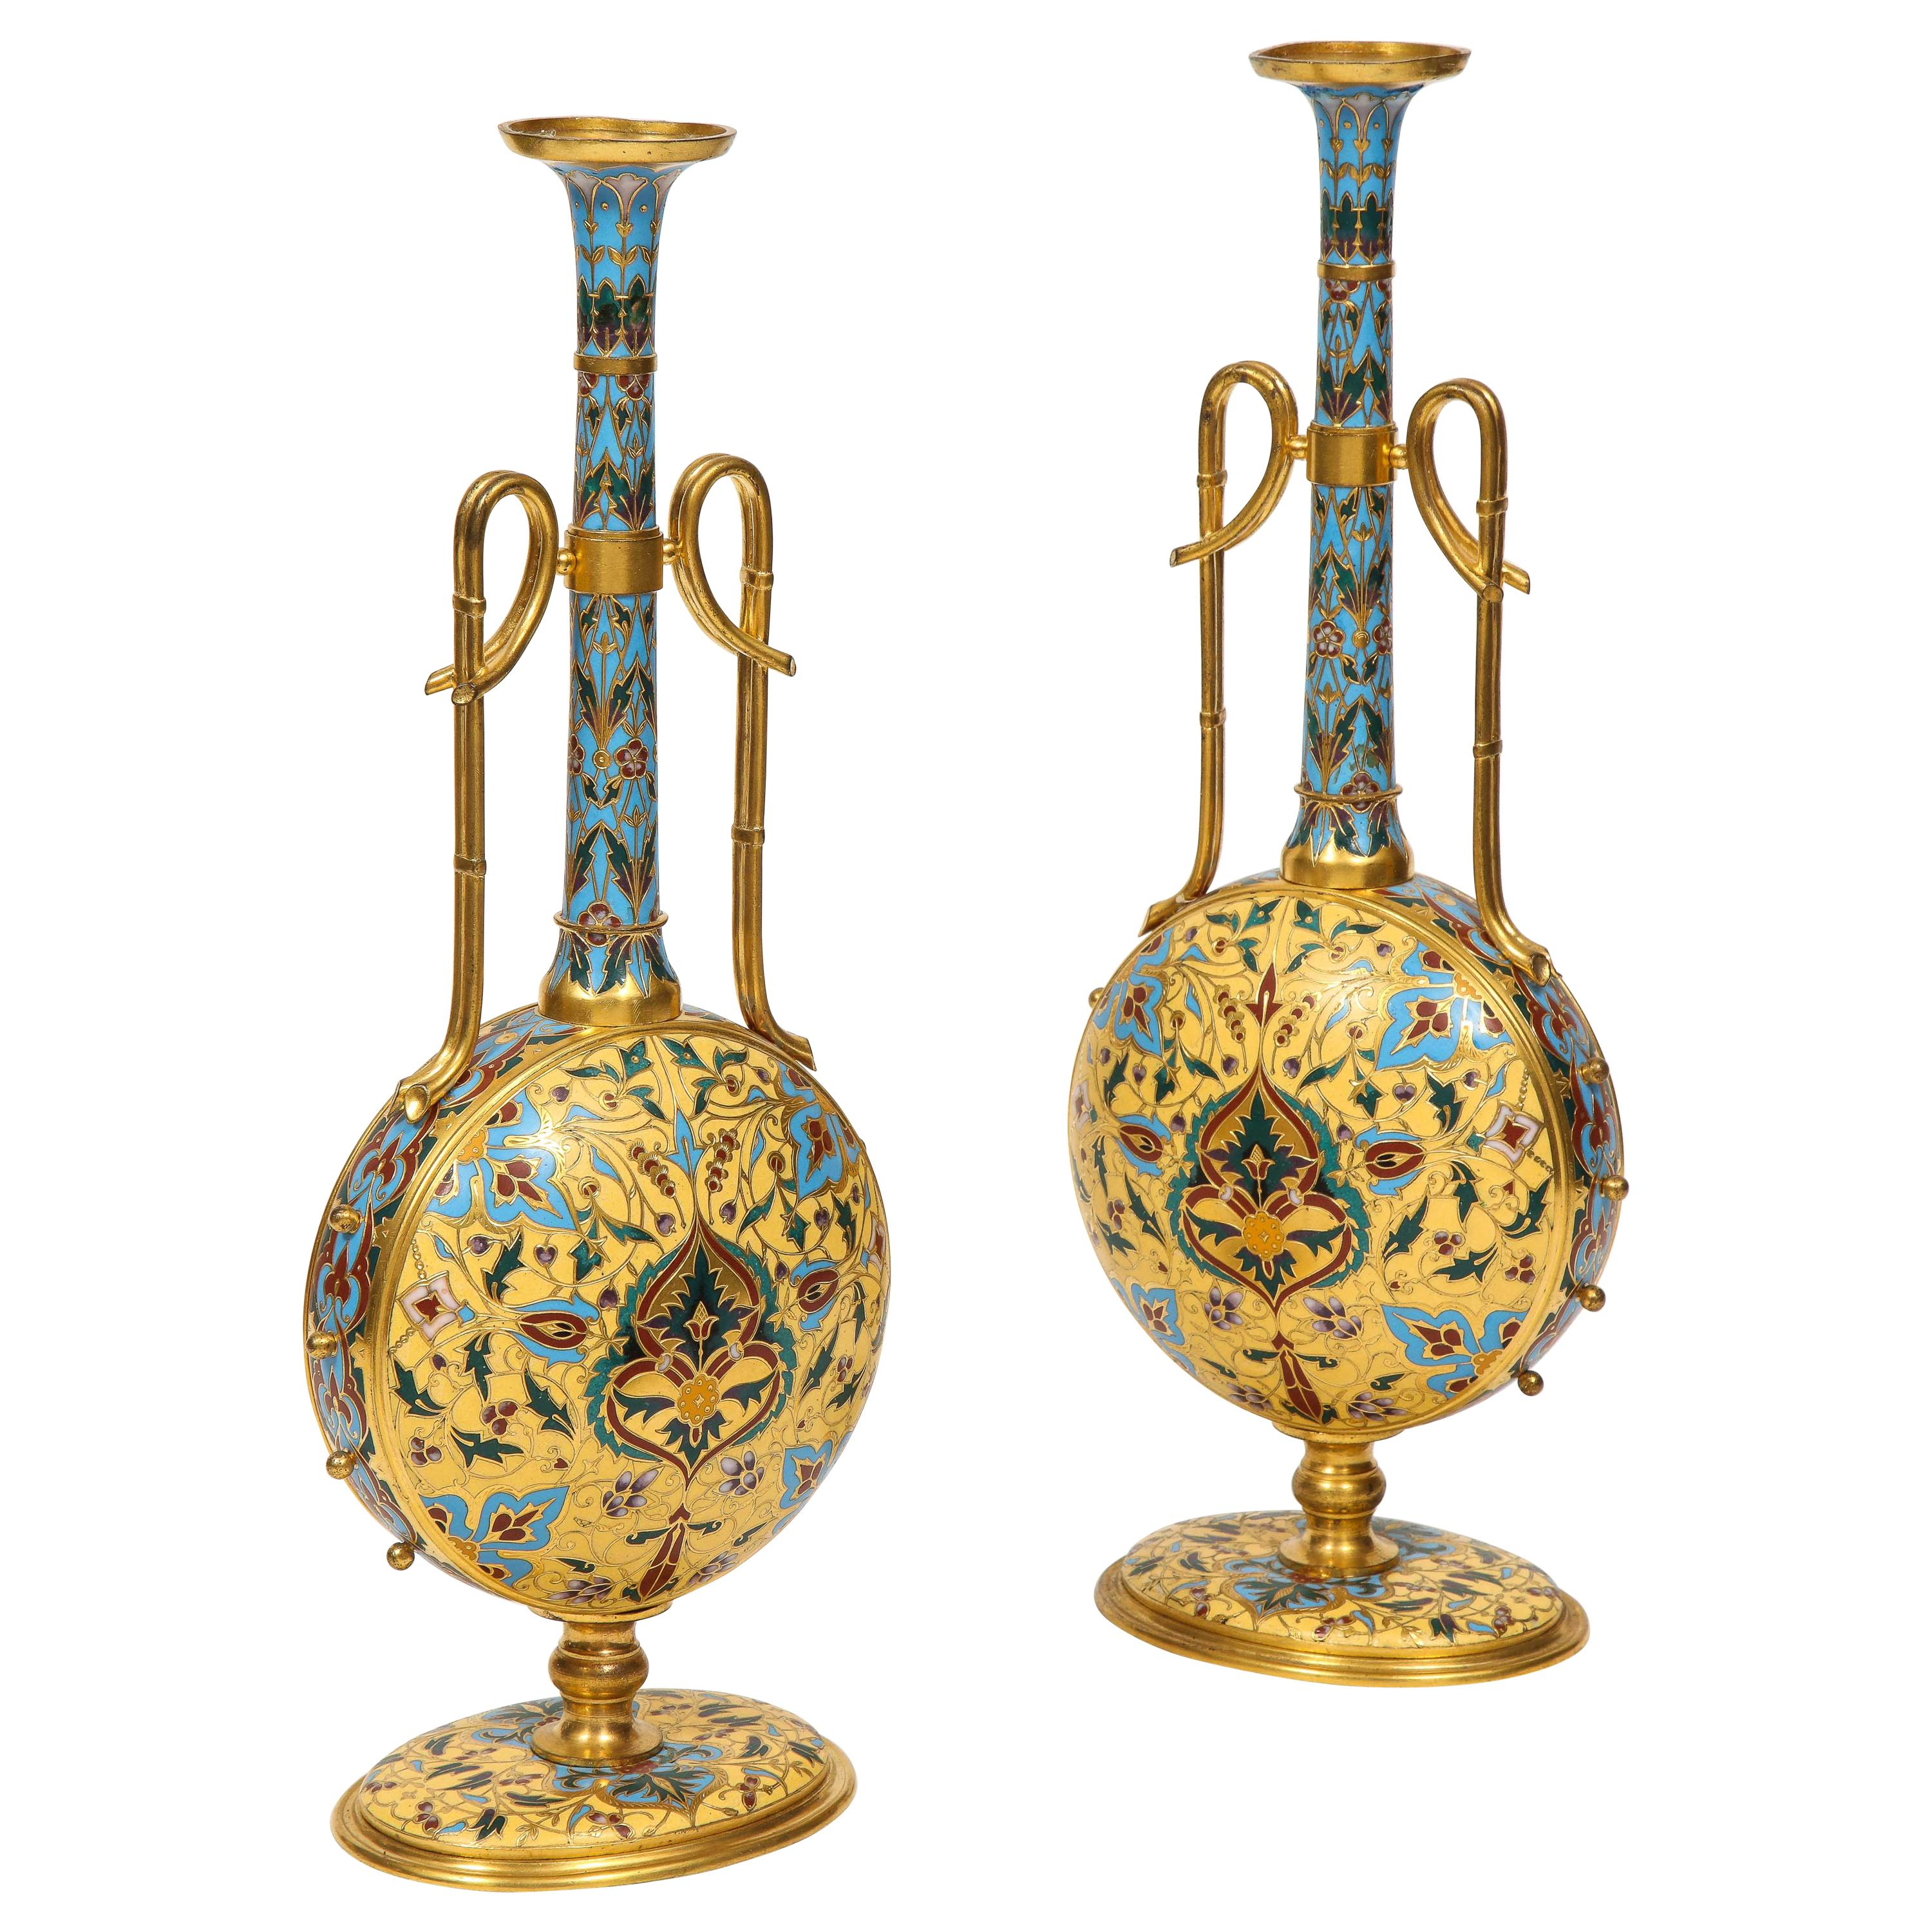 Extremely Rare Pair of Ferdinand Barbedienne Ormolu and Champlevé Enamel Vases